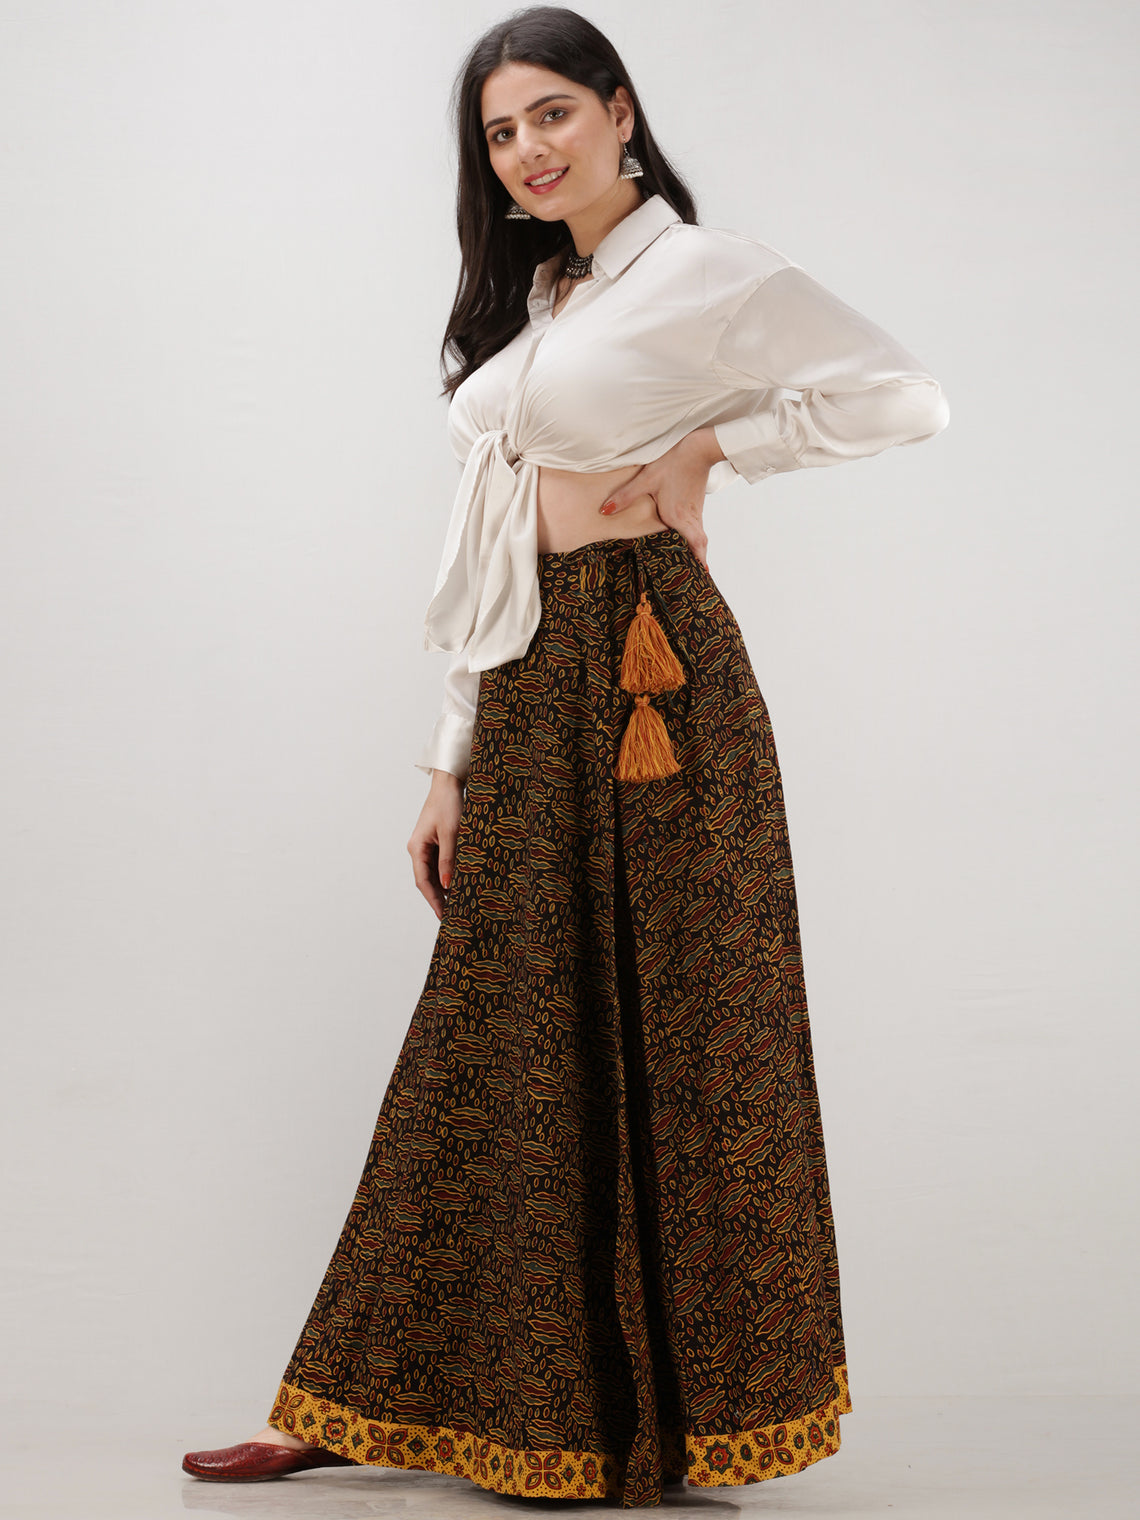 Black Mustard Yellow Ajrakh Hand Block Printed Wrap Around Skirt  - S402BP40